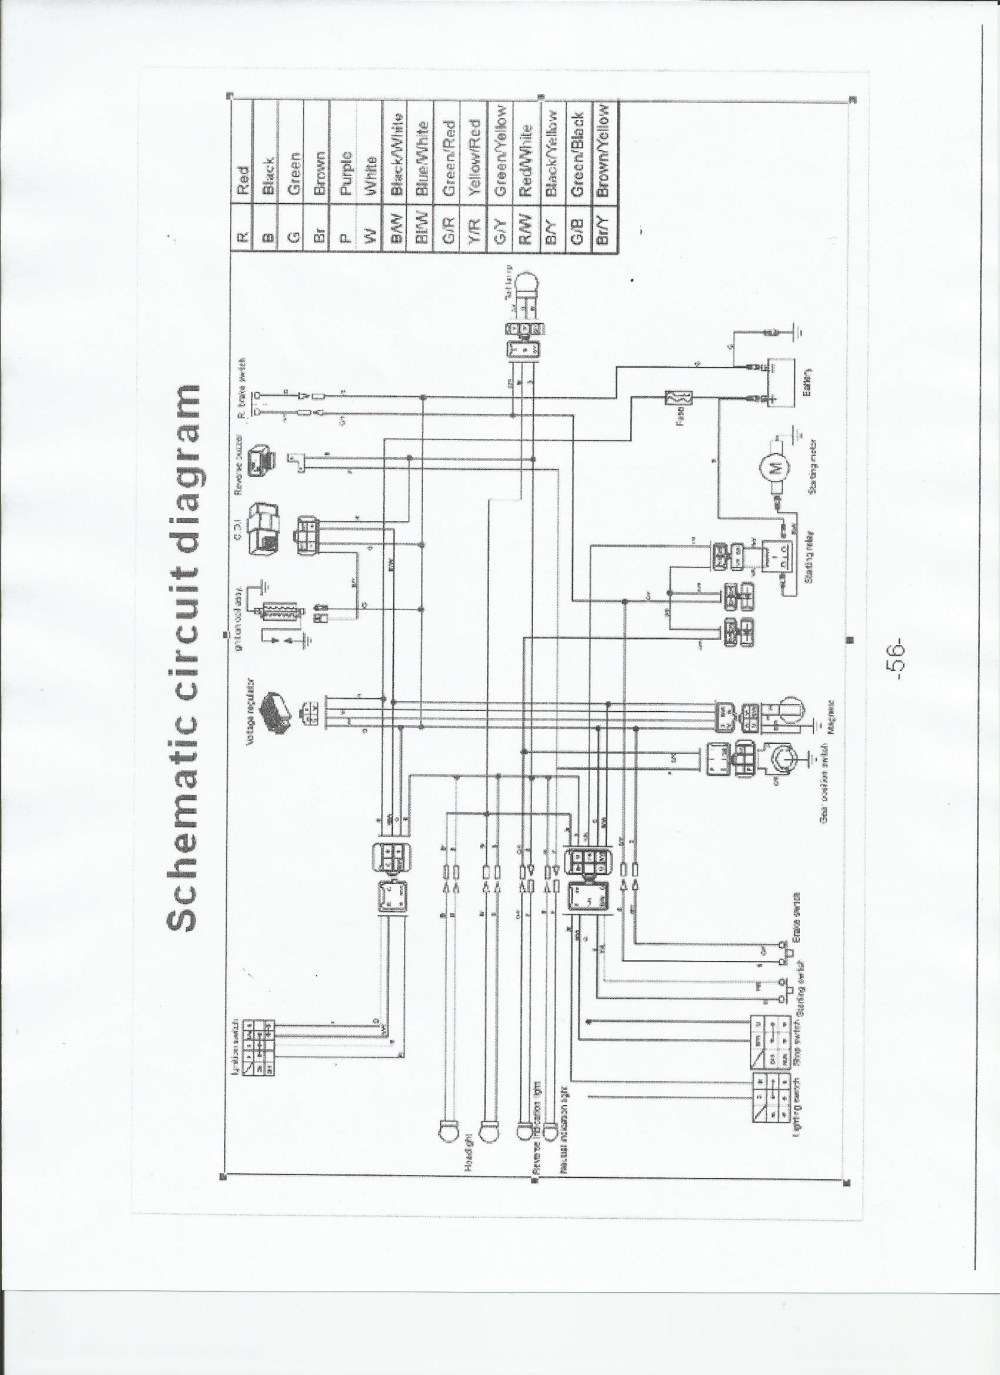 small resolution of  medium resolution of 2007 sunl 110cc atv wiring diagram with remote wiring diagram databasesunl ignition wiring